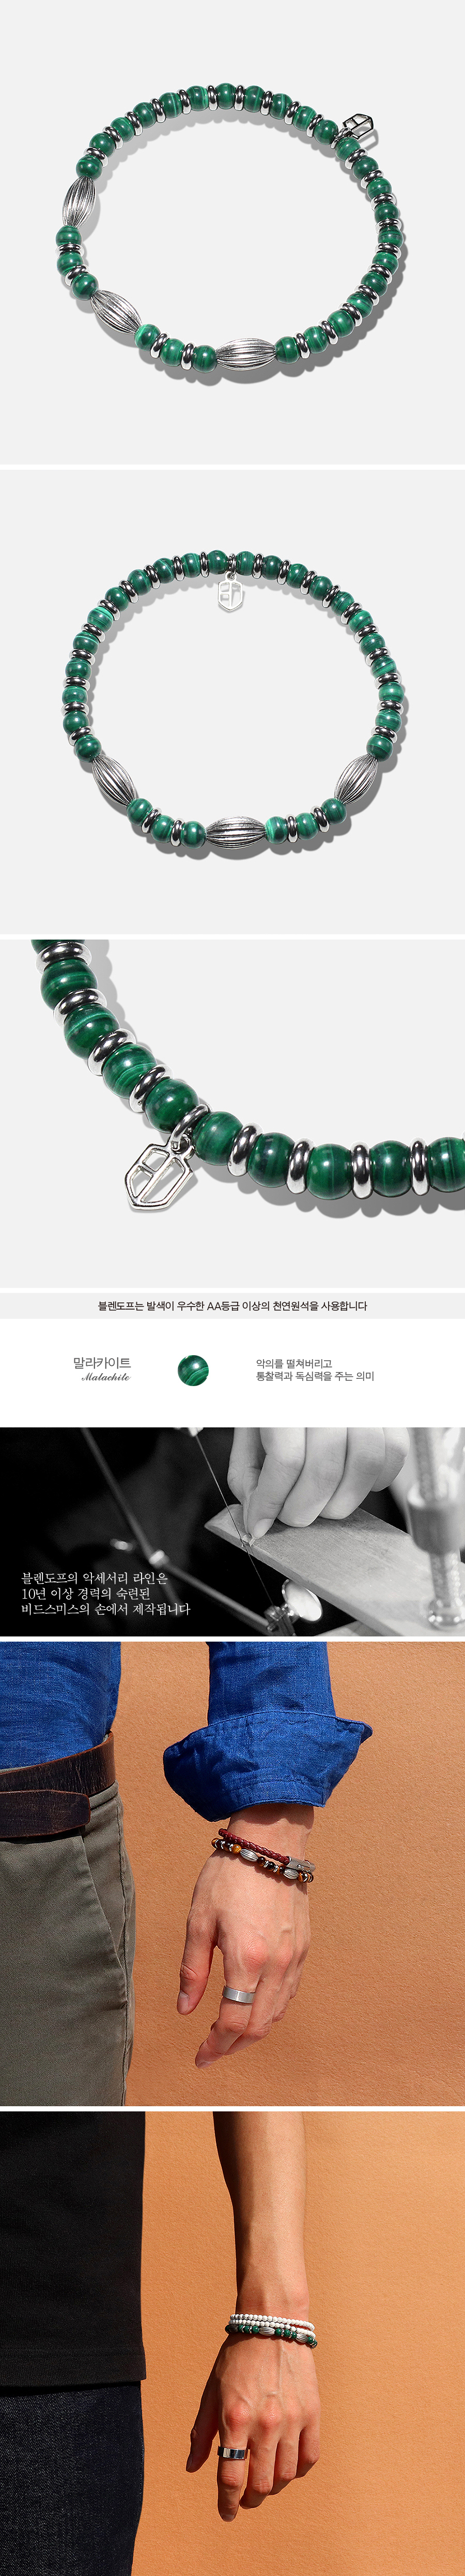 블렌도프(BLENDOFF) Corrugate Beads Bracelet [6mm Malachite]